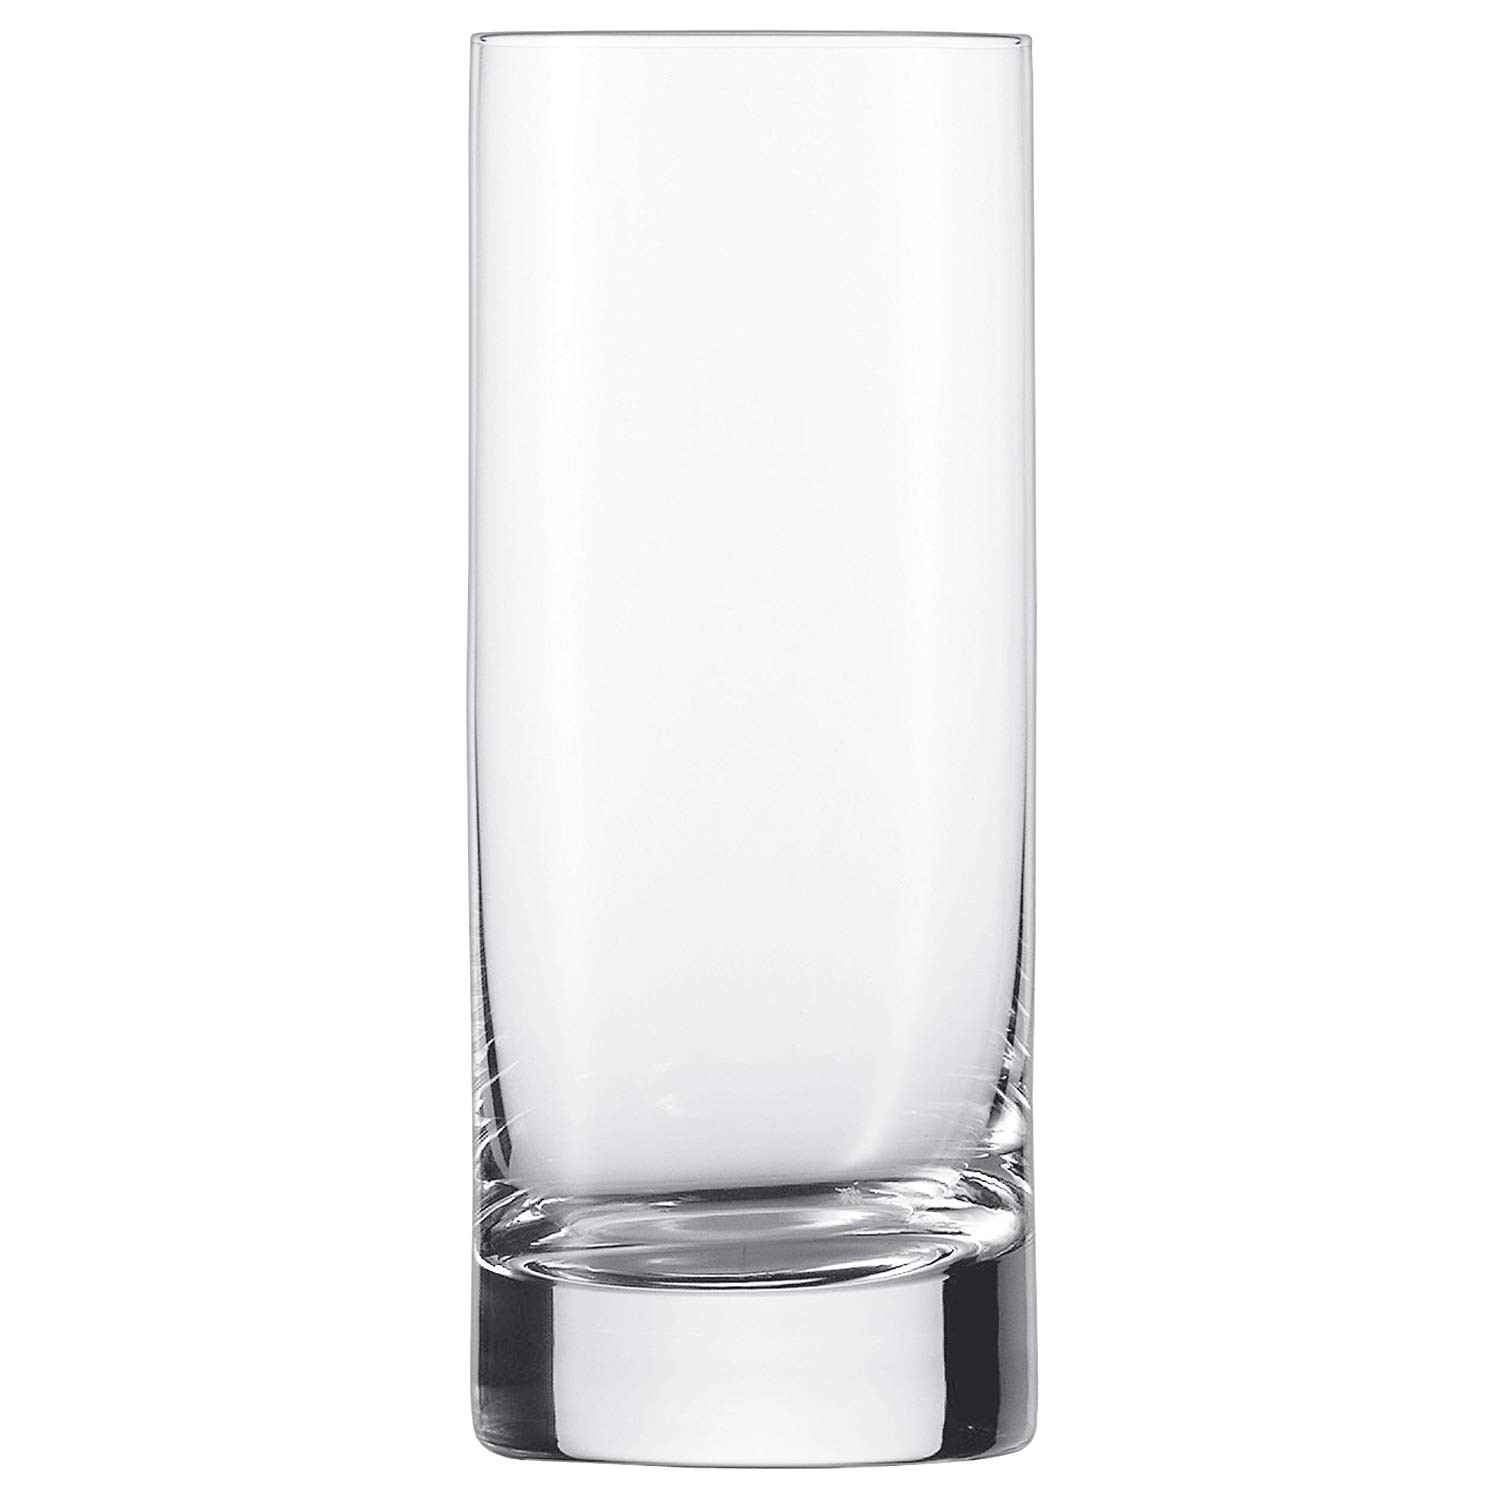 lead crystal cut glass vase of amazon com schott zwiesel tritan crystal glass paris barware for amazon com schott zwiesel tritan crystal glass paris barware collection collins long drink cocktail glass 11 1 ounce set of 6 old fashioned glasses